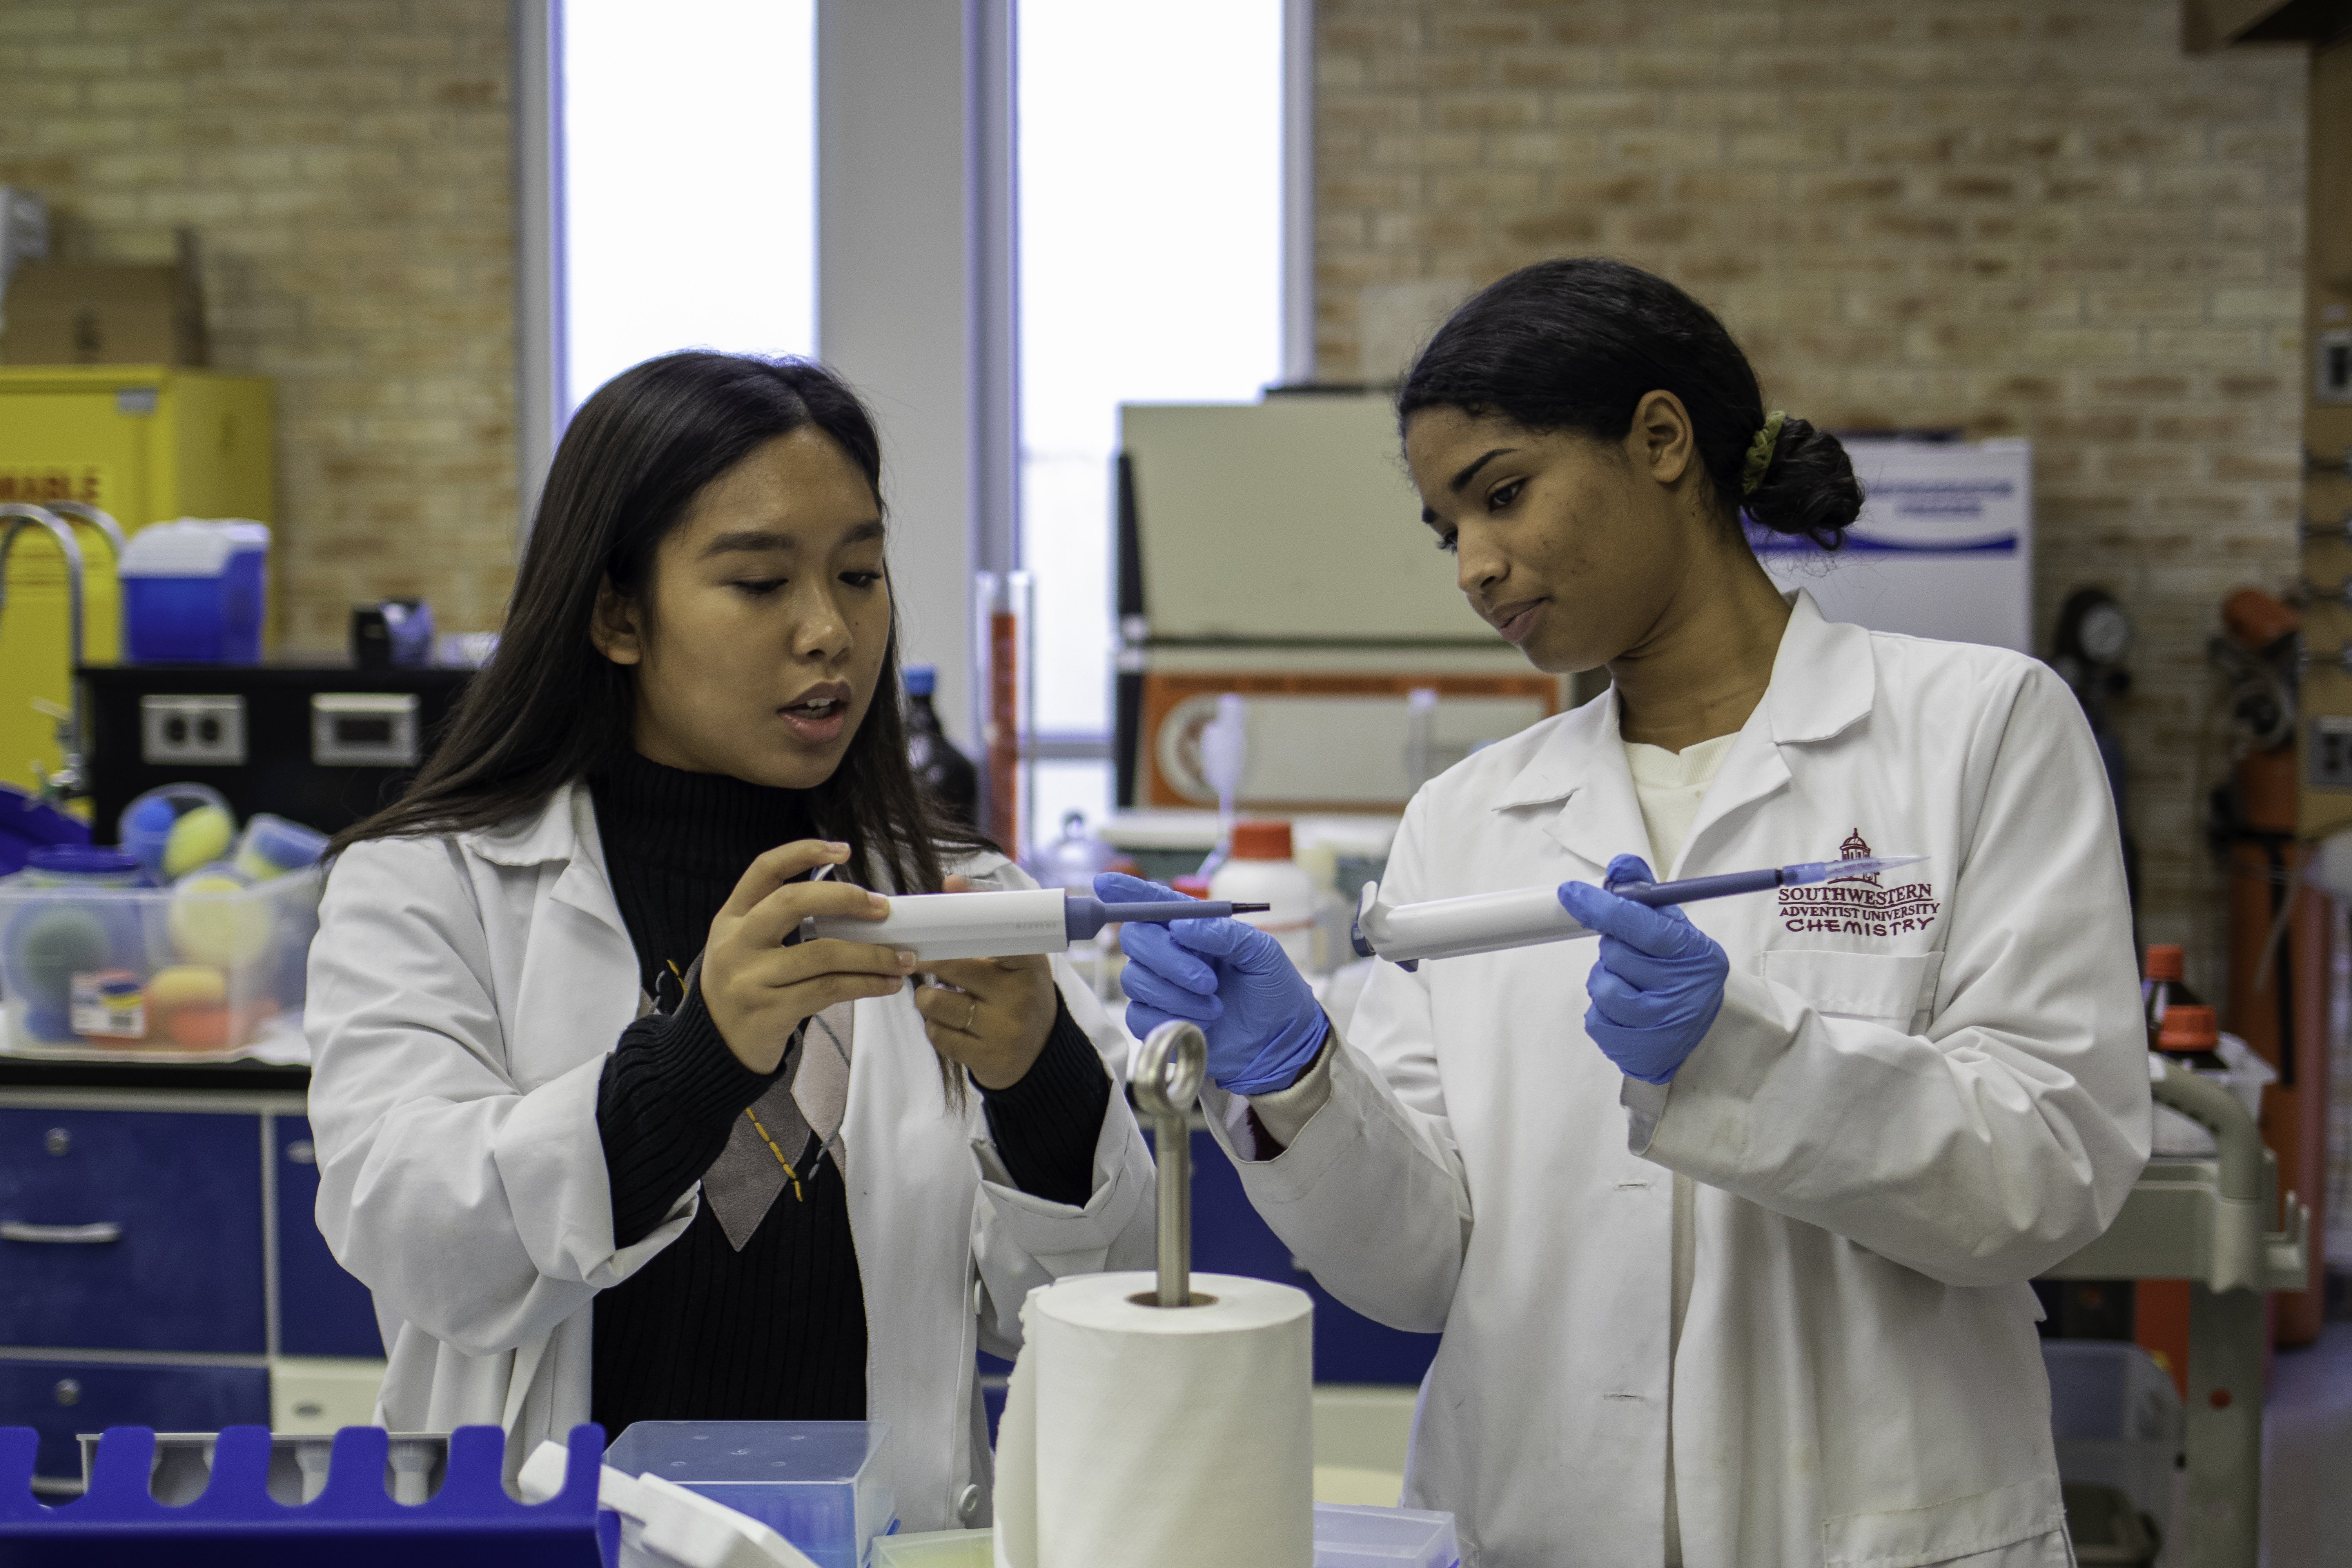 Two students examine and pick up their lab tools as they compare their results with each other.